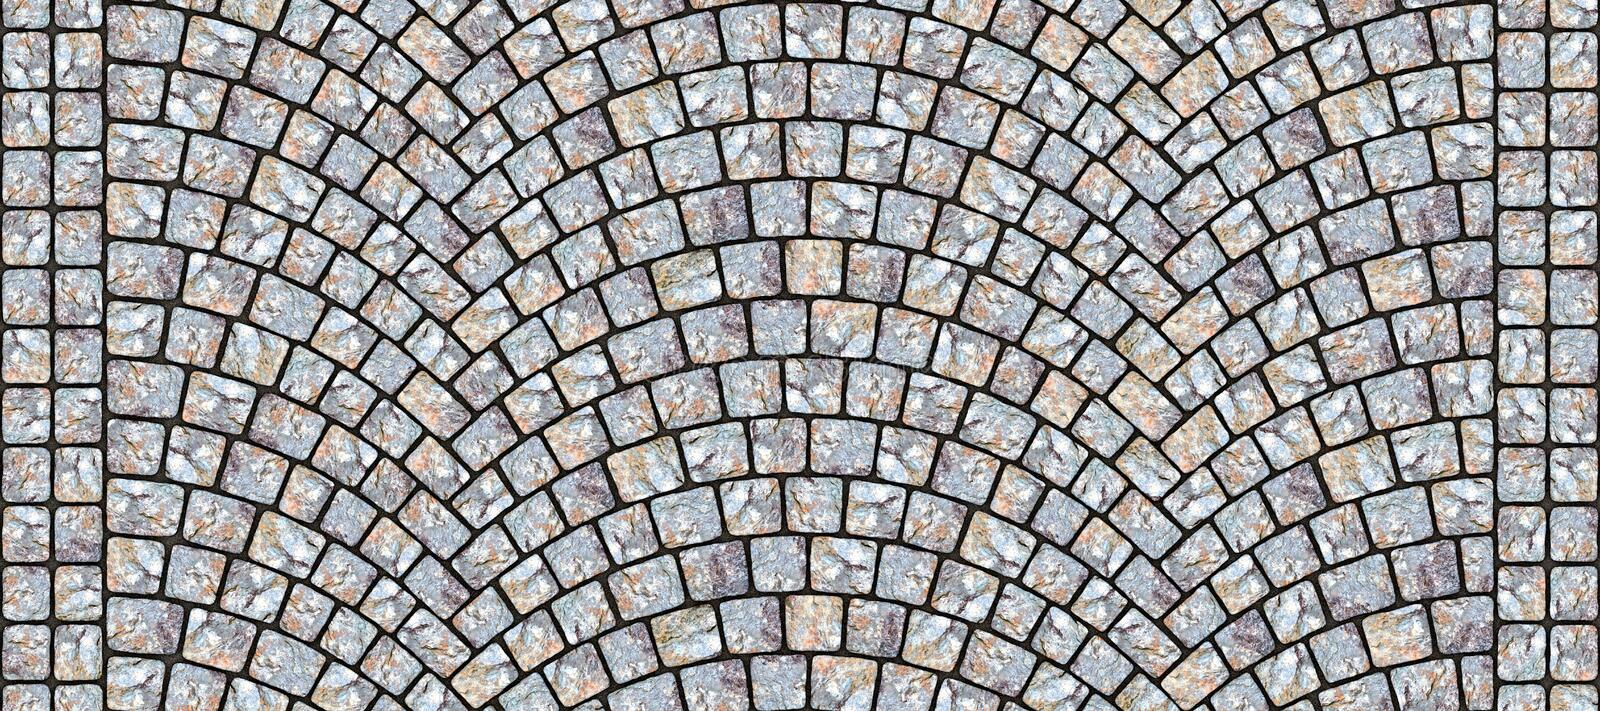 Road curved cobblestone texture 120. Cobblestone arched pavement road with edge courses at the sidewalk. Seamless tileable repeating 3D rendering texture stock illustration